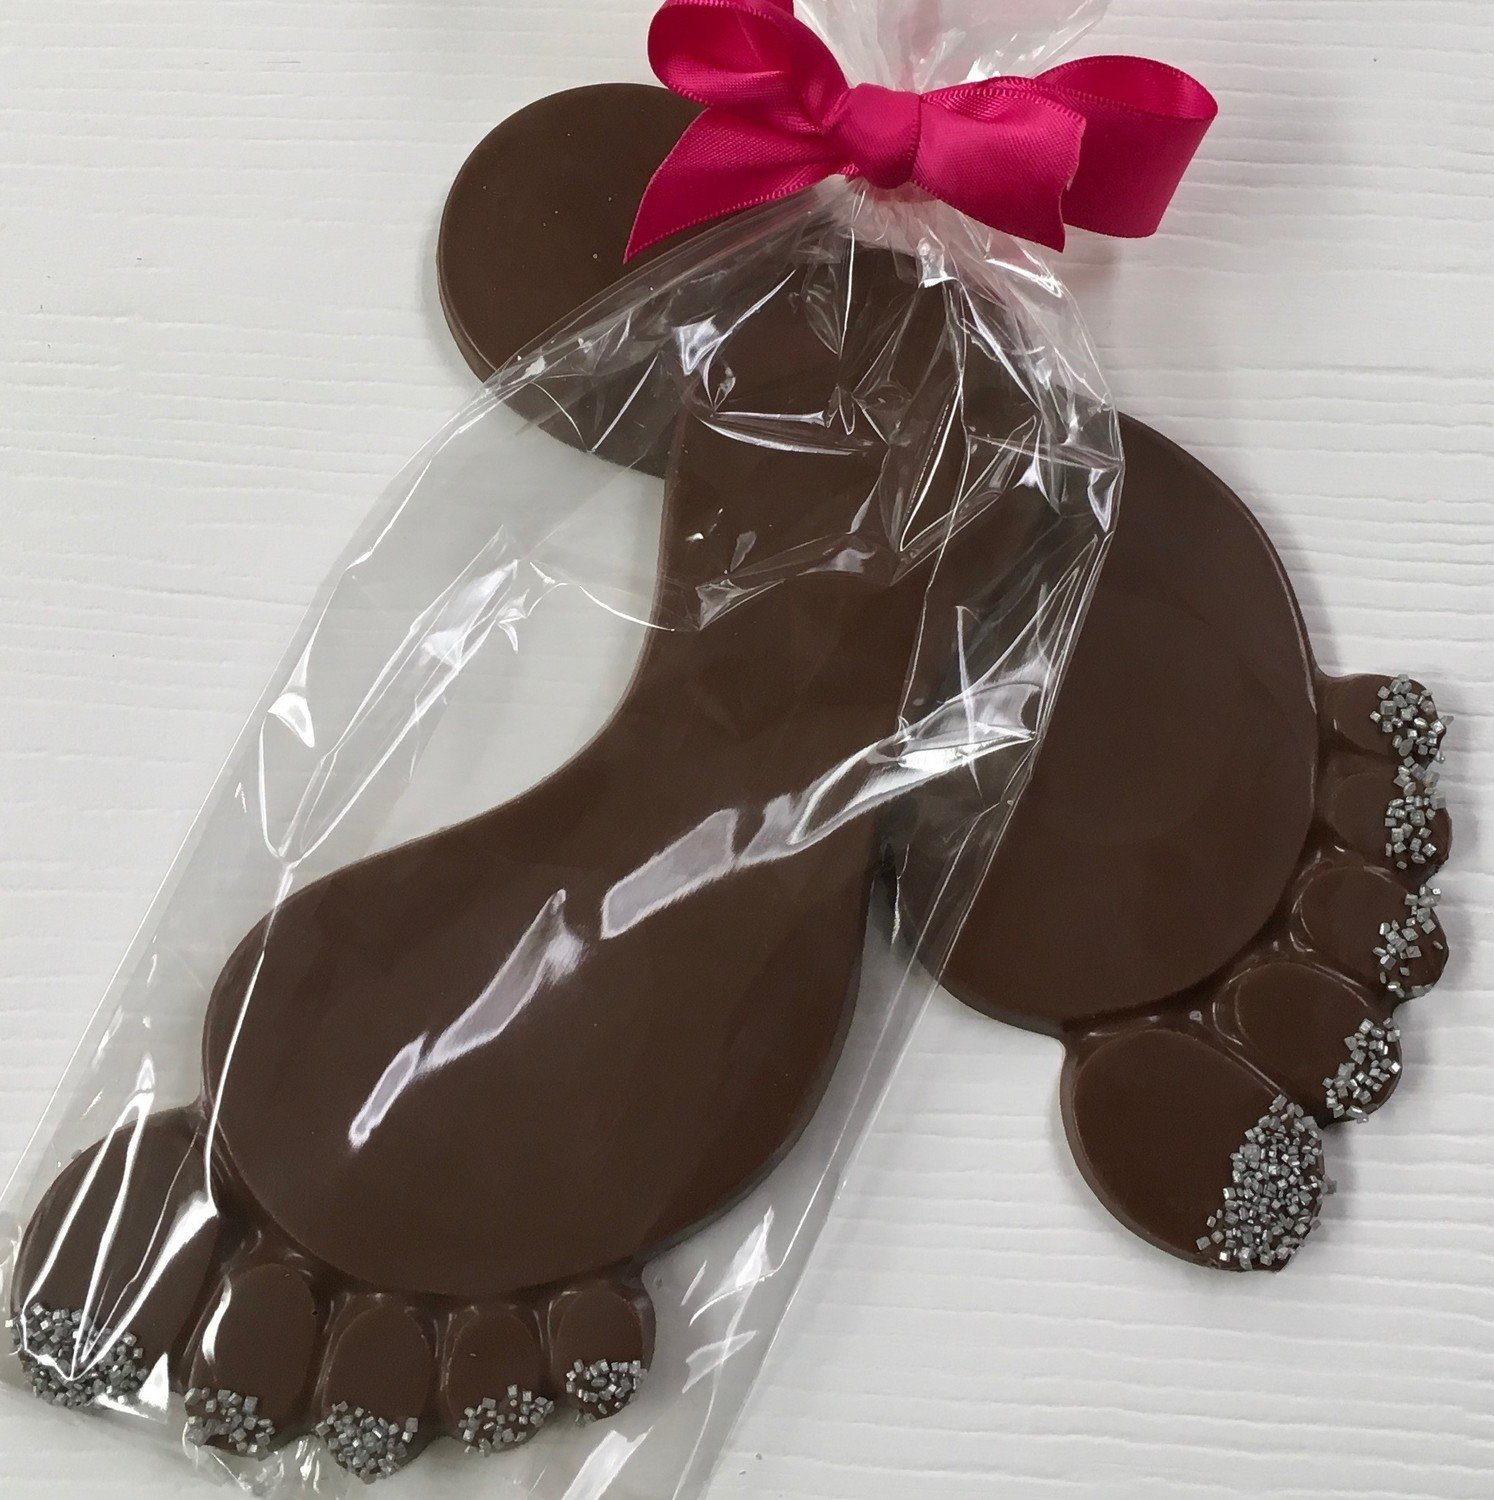 Large Foot.  Peanut & Gluten Free. Choice of Ribbon Color.  Allow 2 days extra